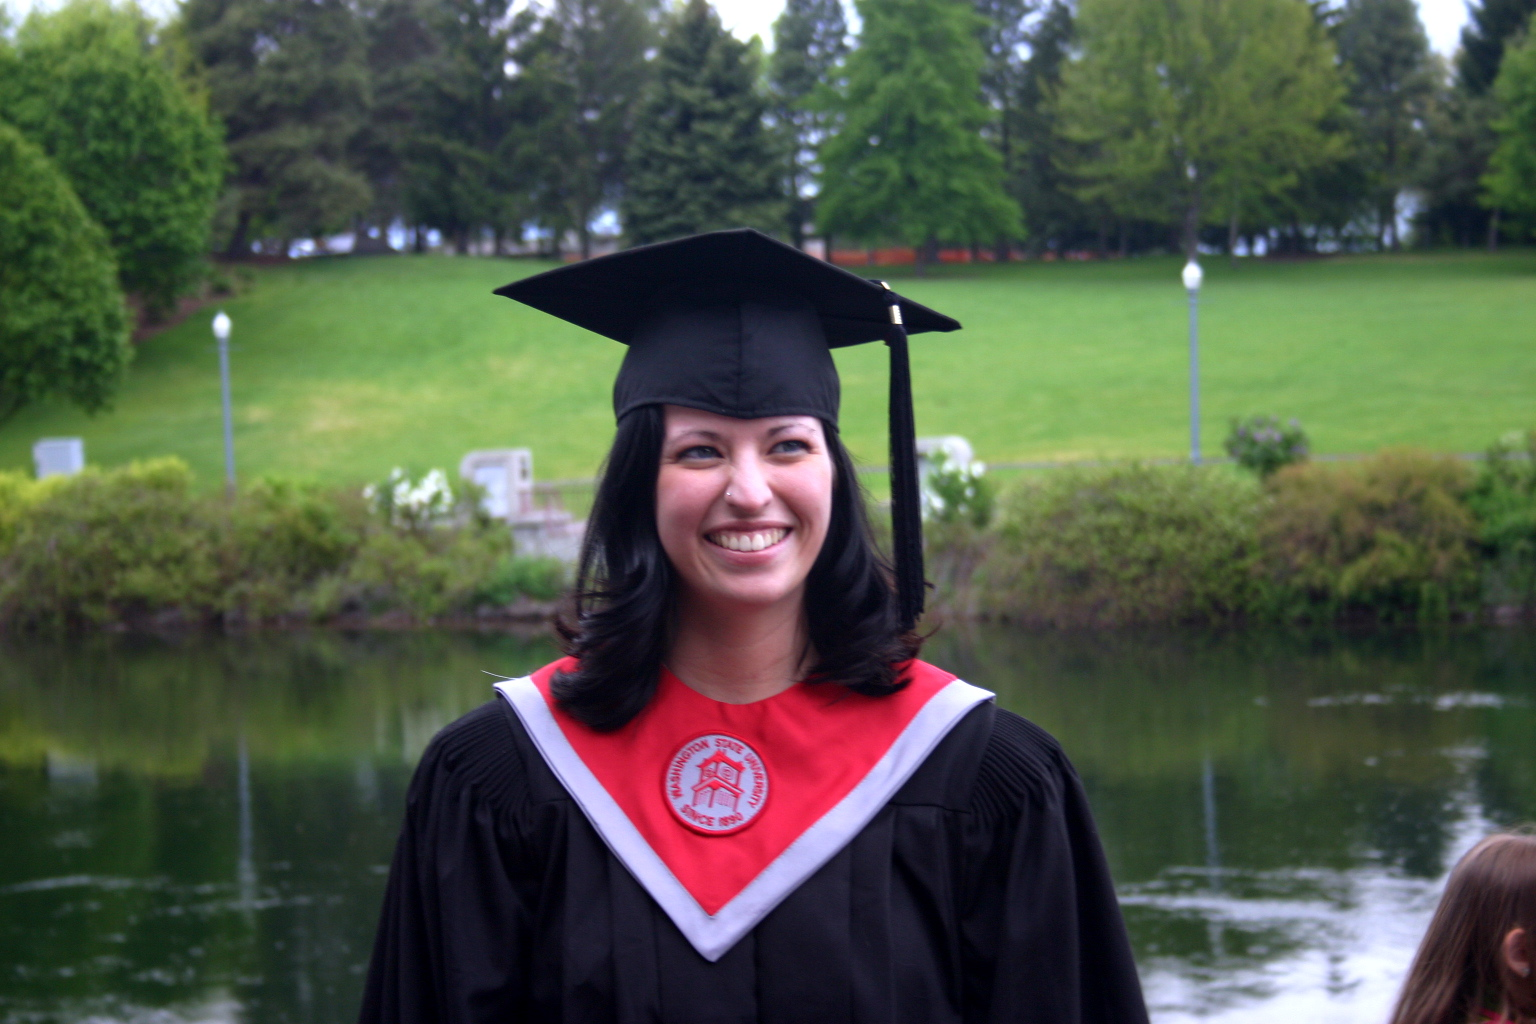 Here I am, way back when, getting my first accredited college degree in interior design. The second degree I received was an MBA. Today, I am studying to take the NCIDQ in the spring.